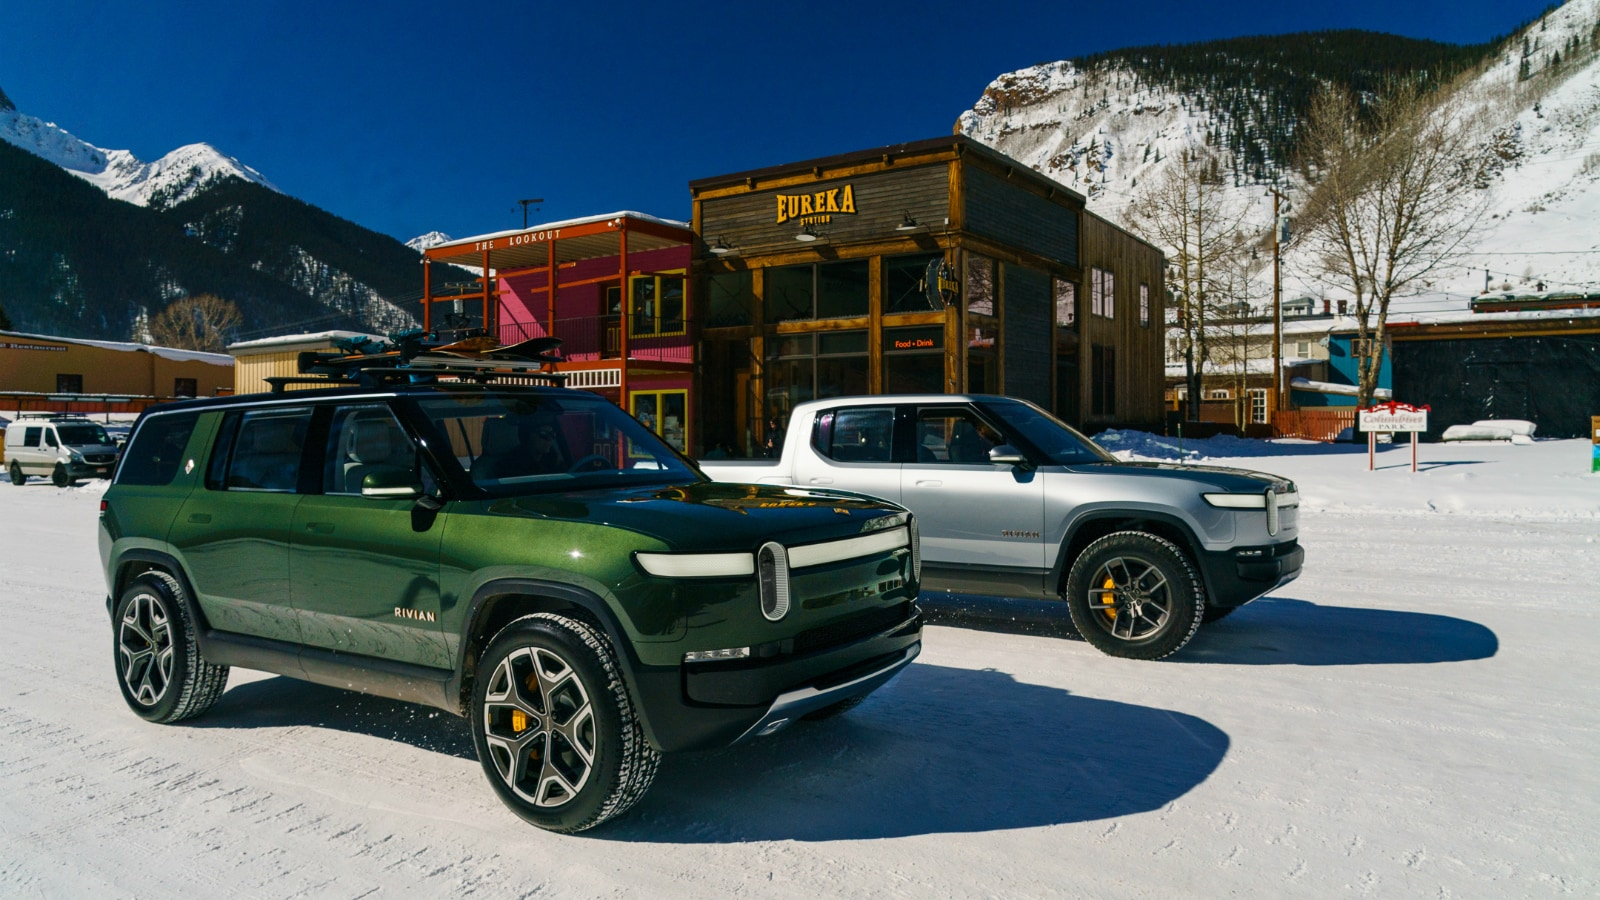 2022 Rivian R1S and R1T on snow